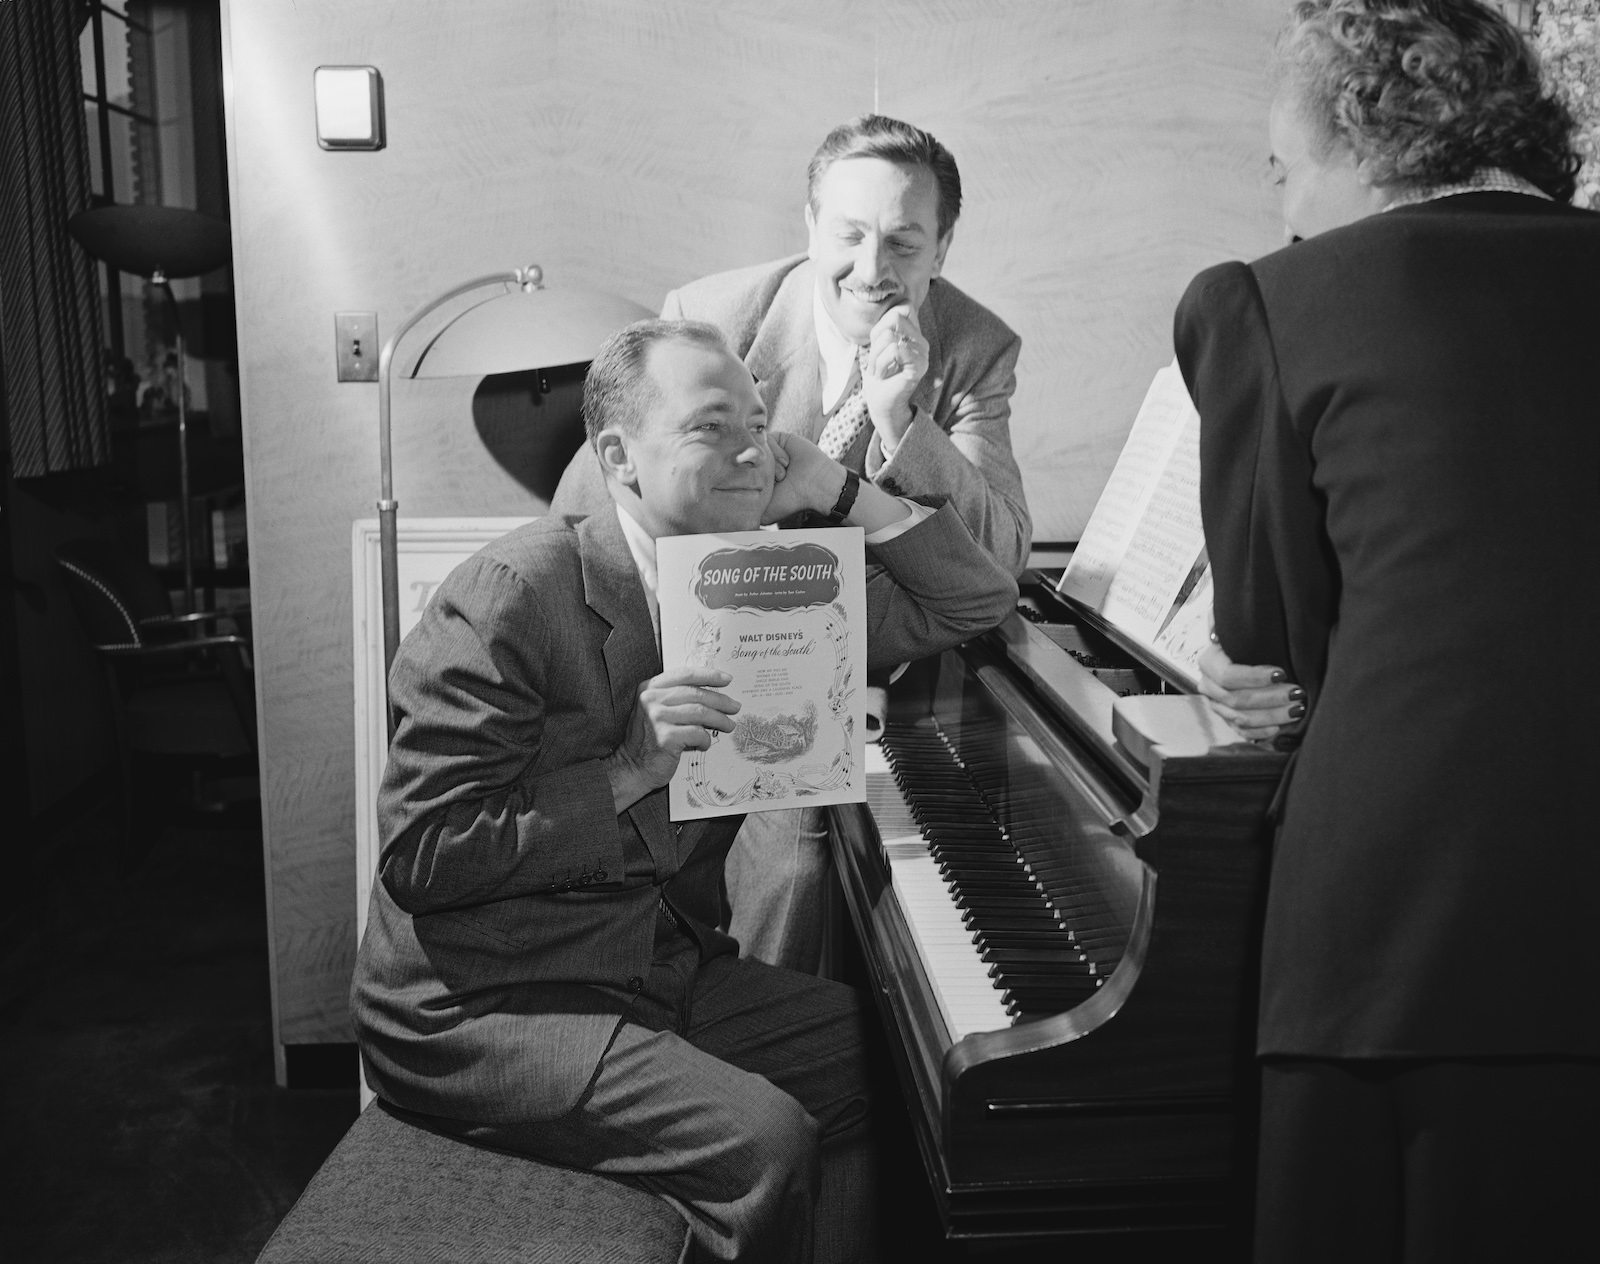 Walt Disney watched musician Johnny Mercer at the piano, as he holds up the sheet music from Disney's 'Song of the South' movie, October 28, 1946.